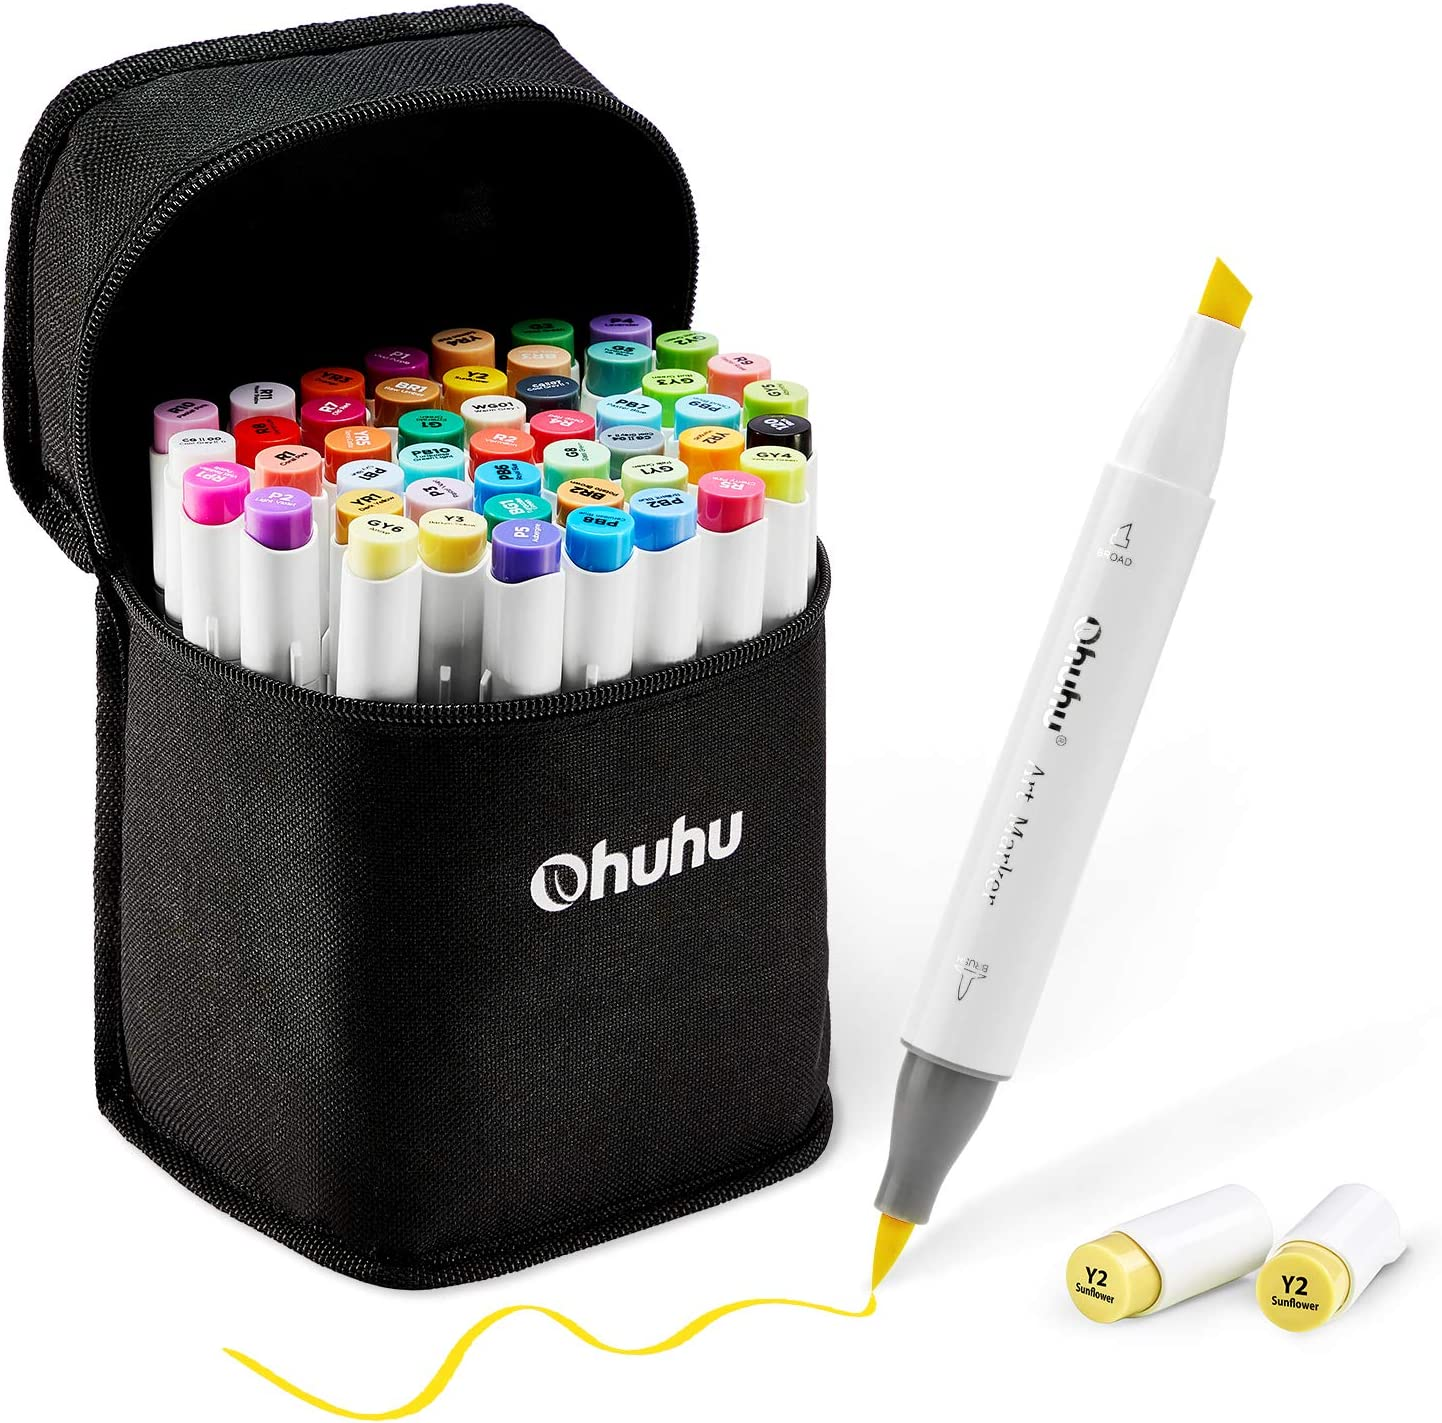 Genuine Artist Sketch Markers Design Drawing Pens For School Stationary Supplies